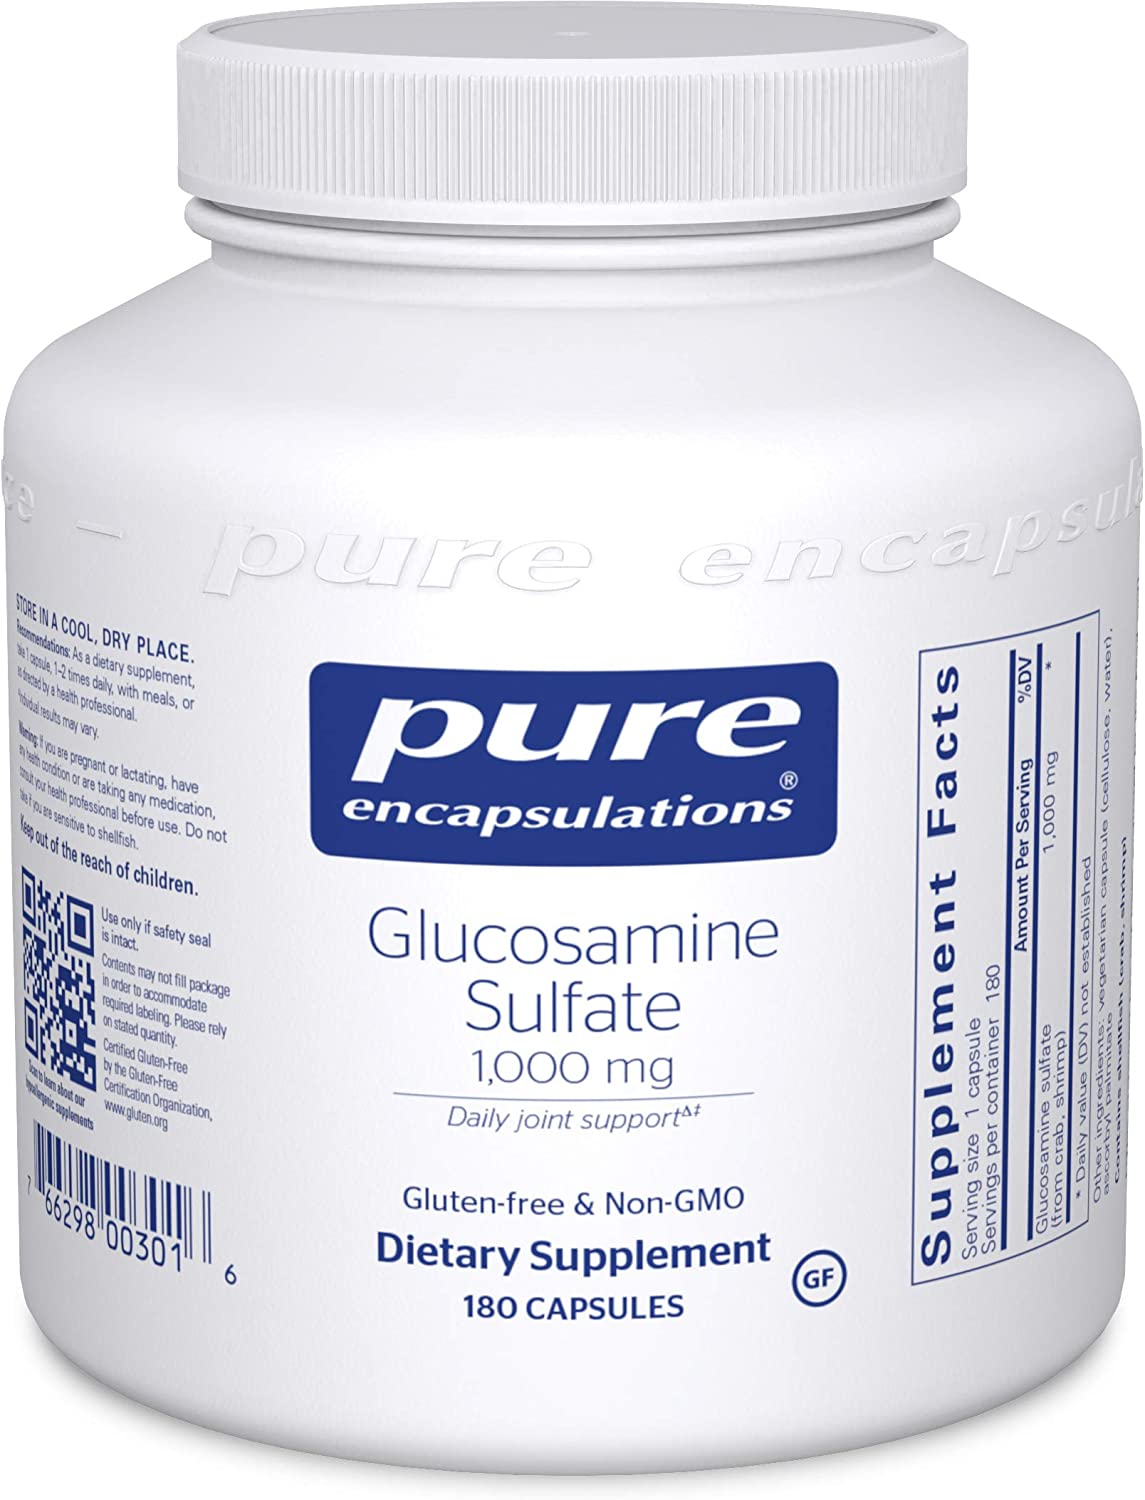 Pure Encapsulations - Glucosamine Sulfate 1000 mg - Dietary Supplement Supports Healthy Cartilage and Joint Function - 180 Capsules